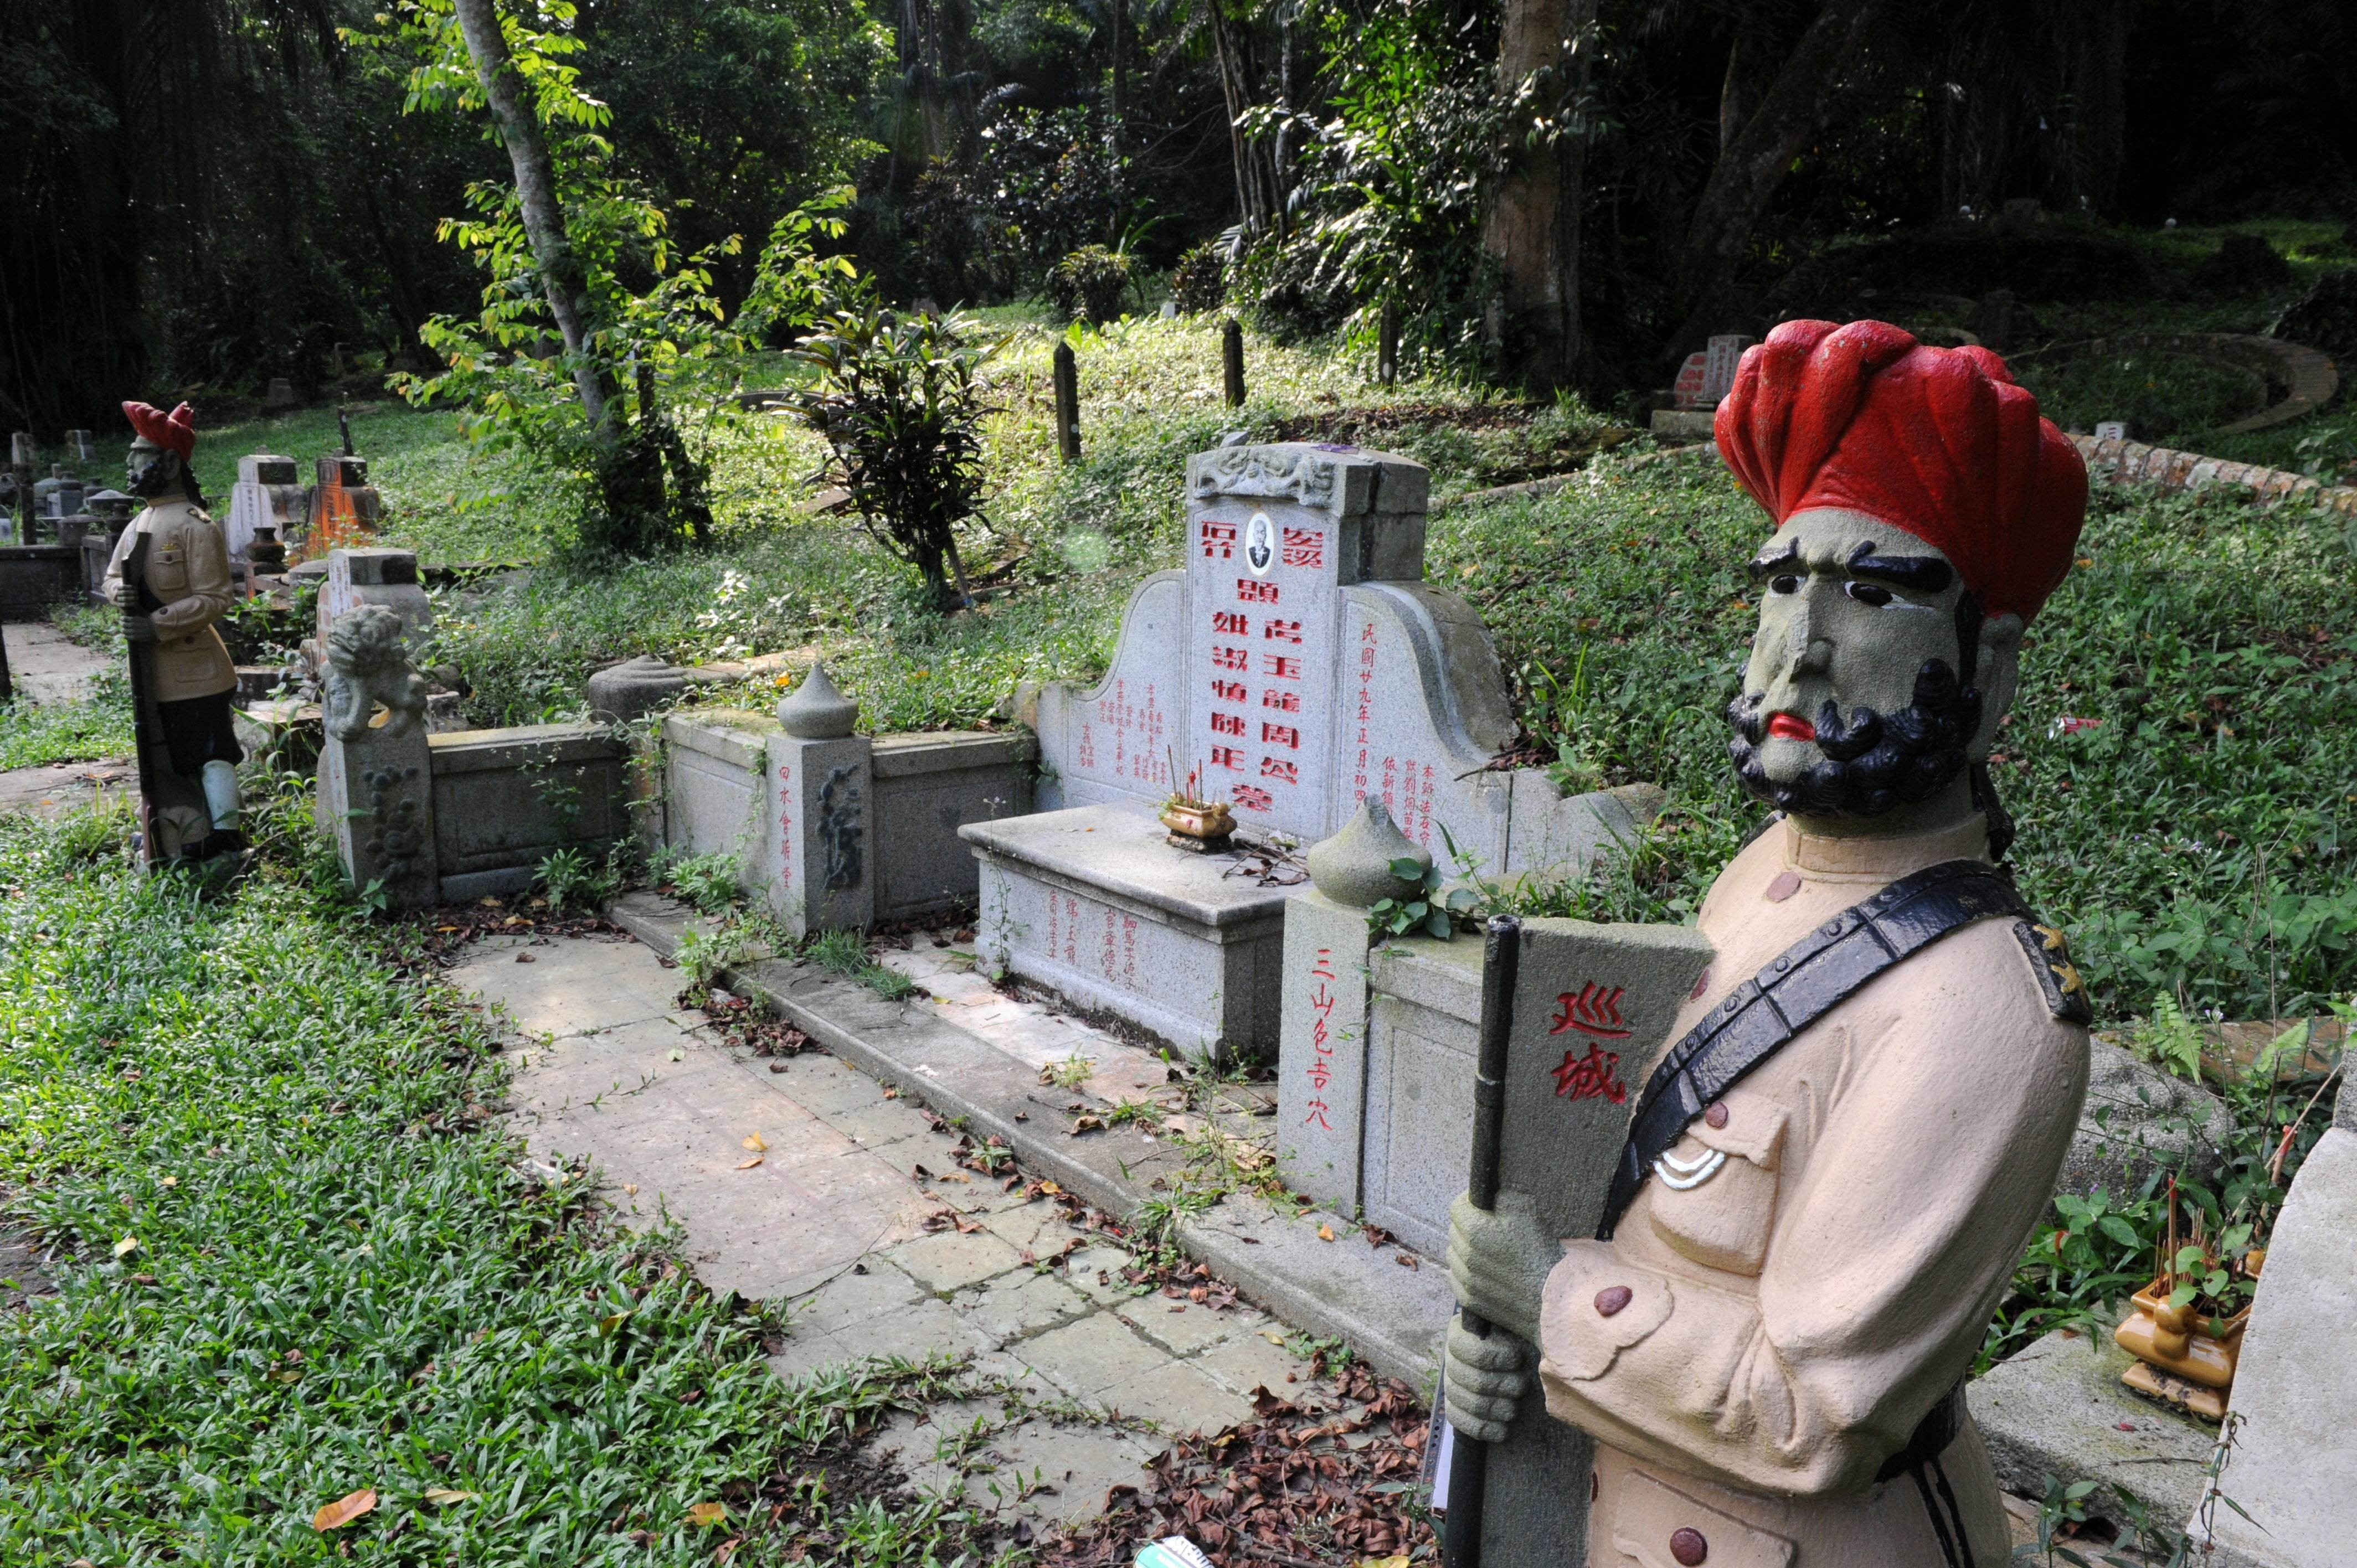 Singapore digs up graves to build new motorways, including Bukit Brown  cemetery where early Chinese immigrants rest | South China Morning Post